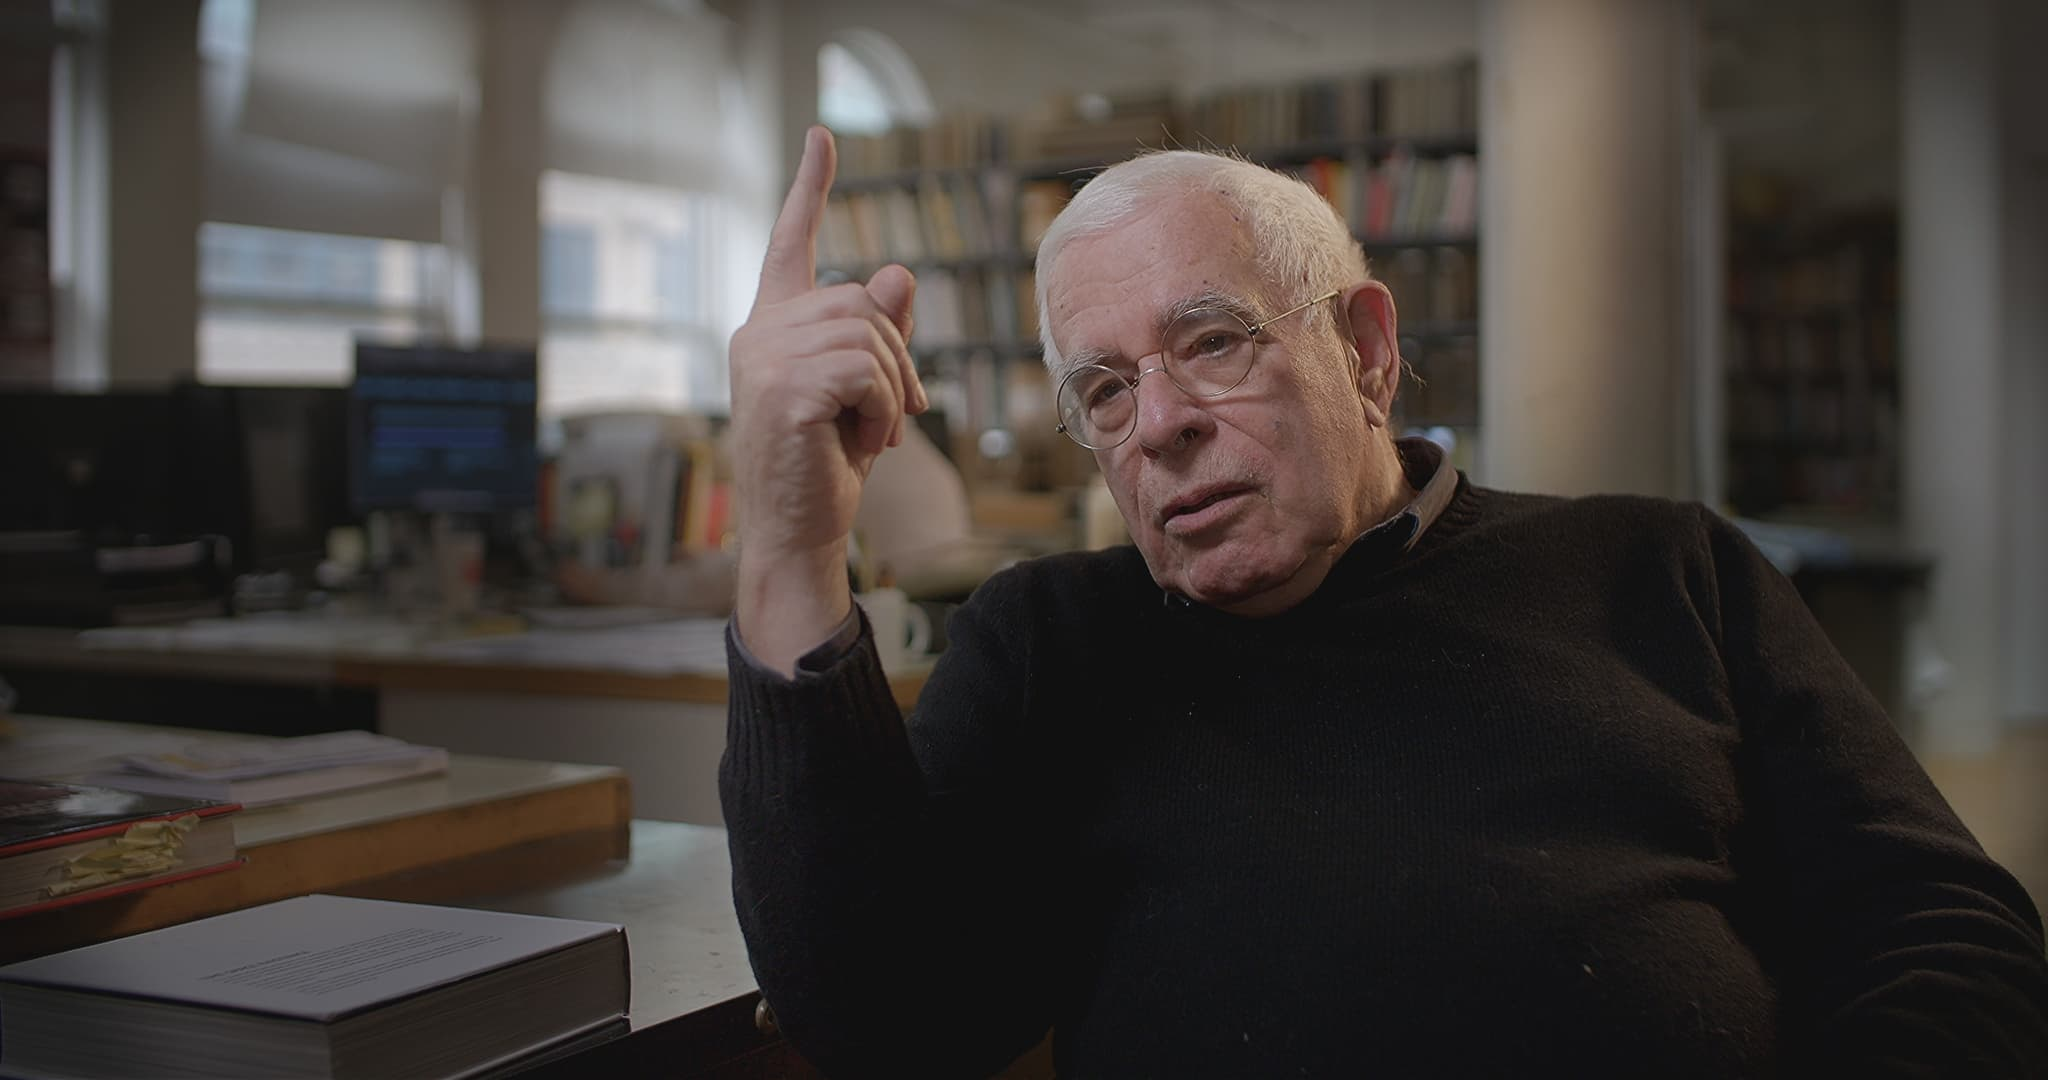 Star-Architekt Peter Eisenman (New York) im Gespräch. © NOW Collective.